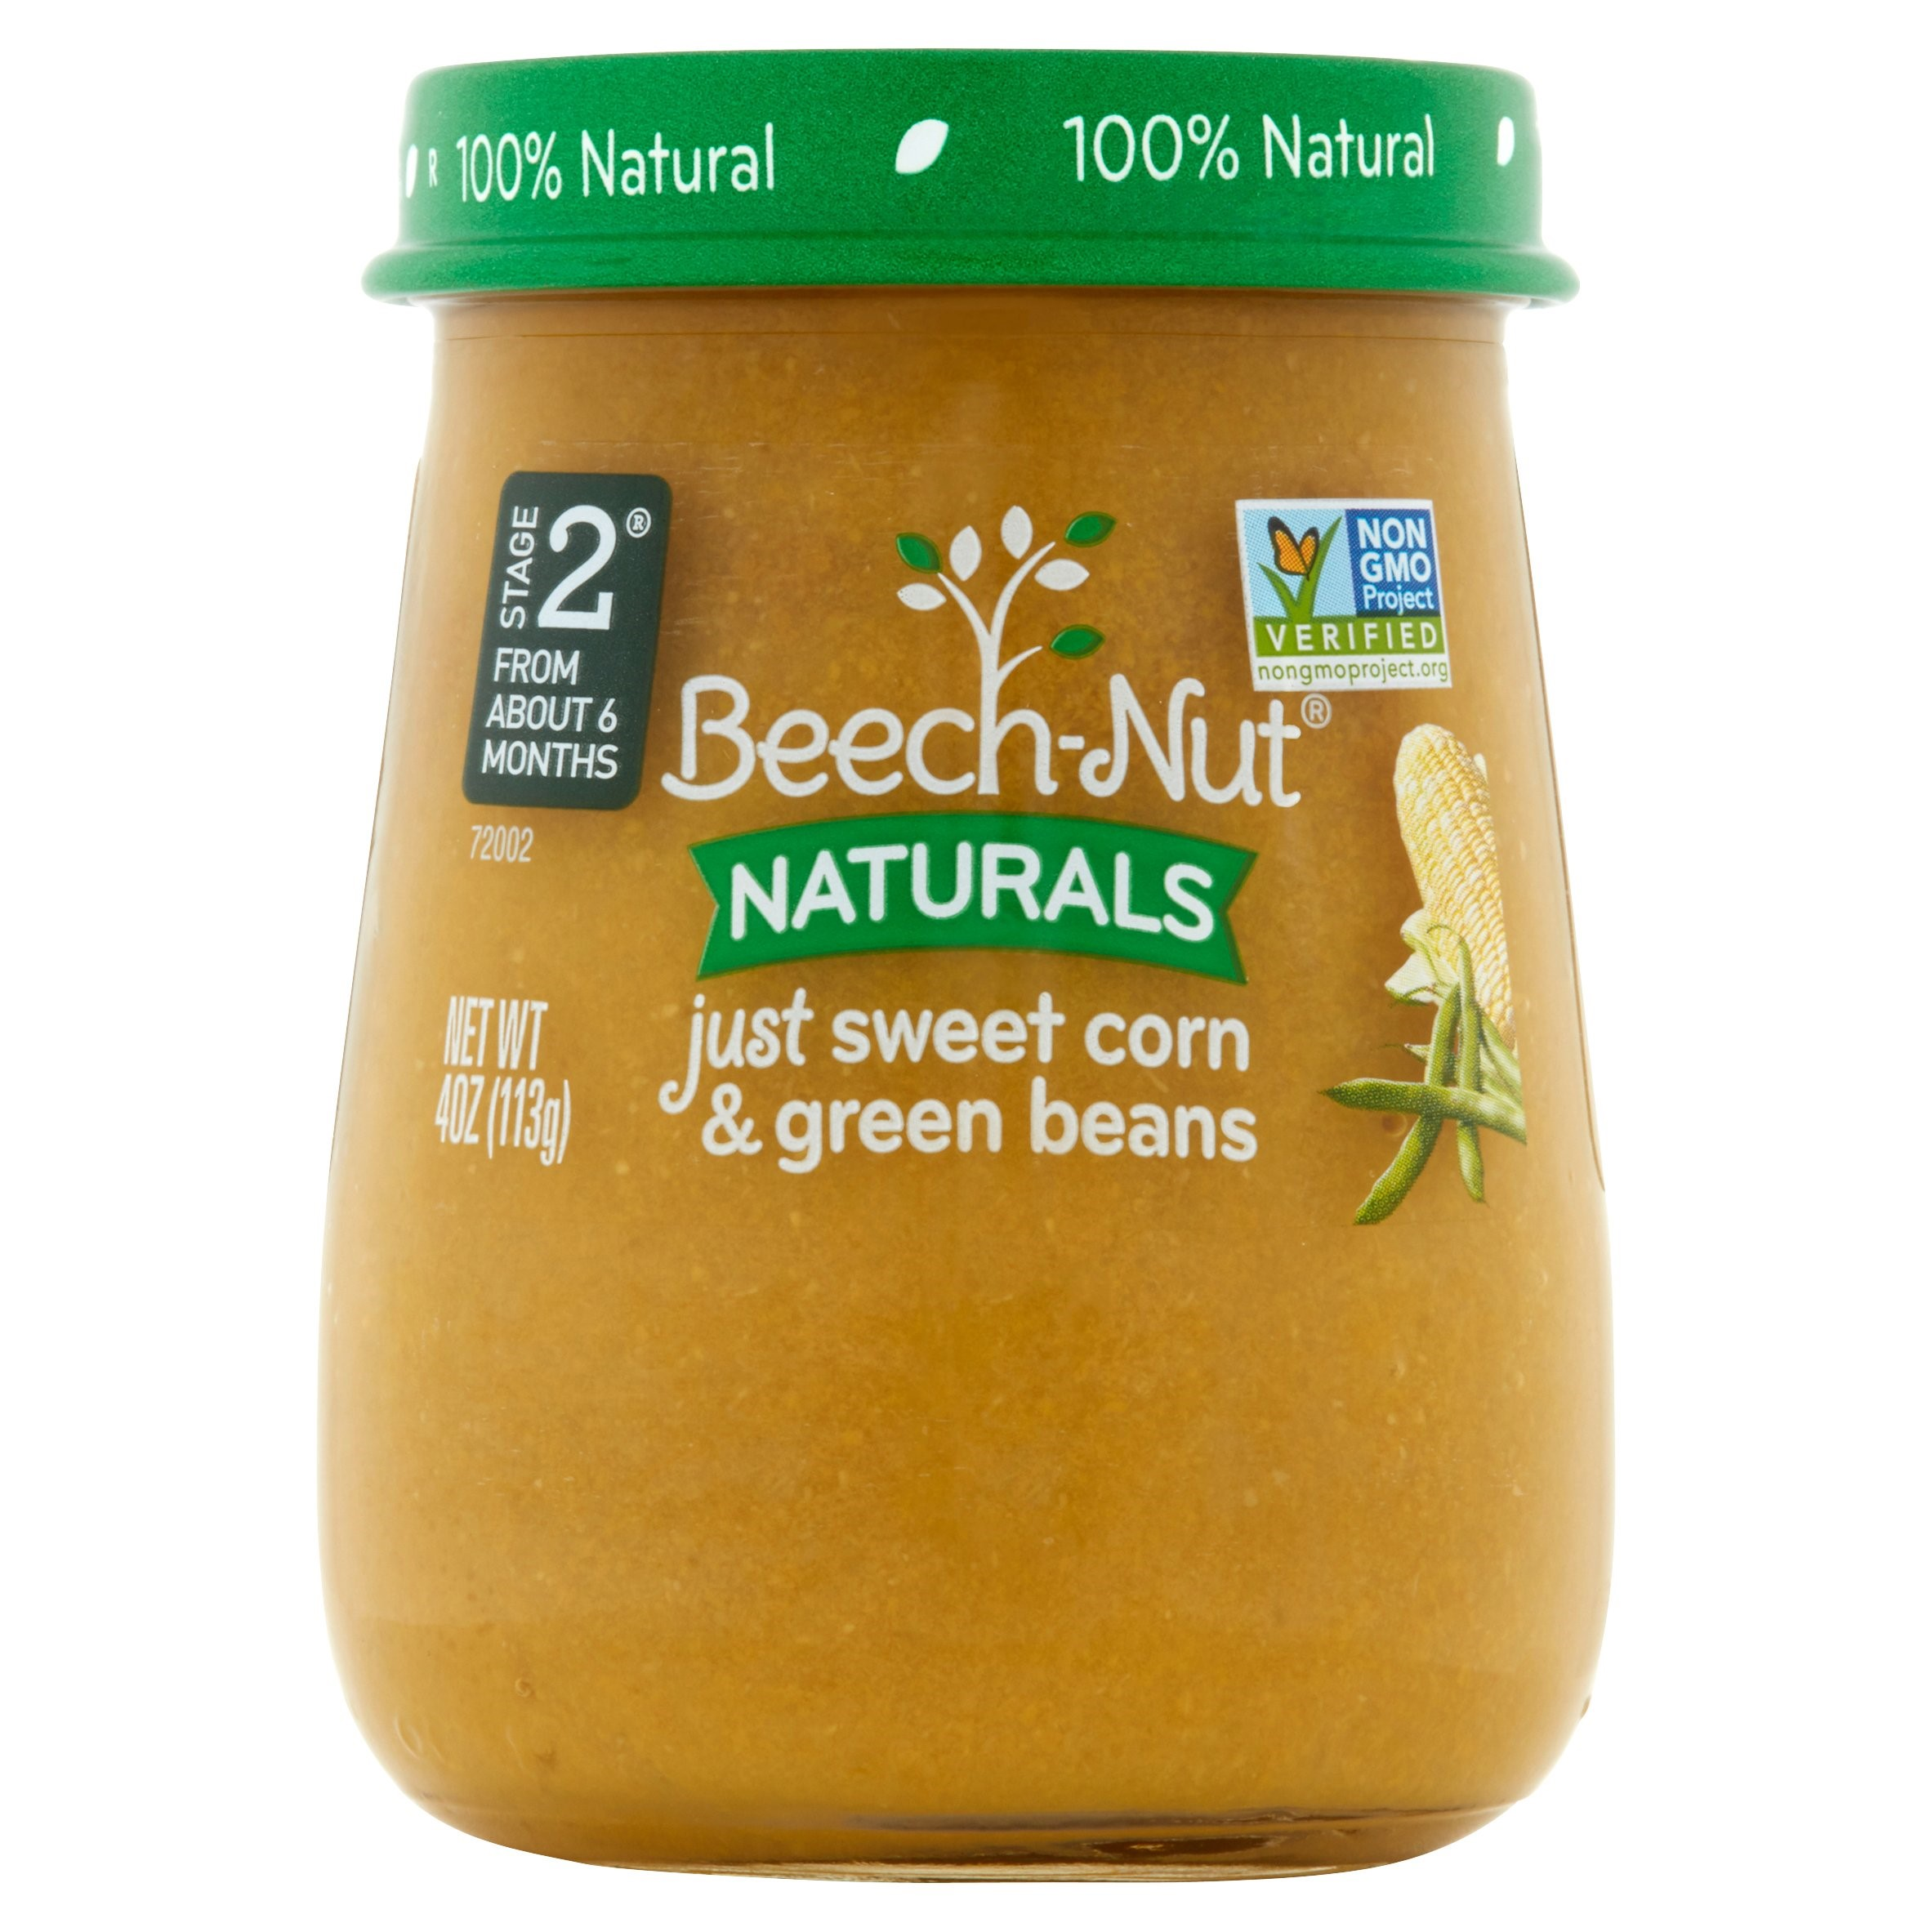 Beech-Nut Naturals Just Sweet Corn & Green Beans Stage 2 from About 6 Months, 4 oz, 10 pack